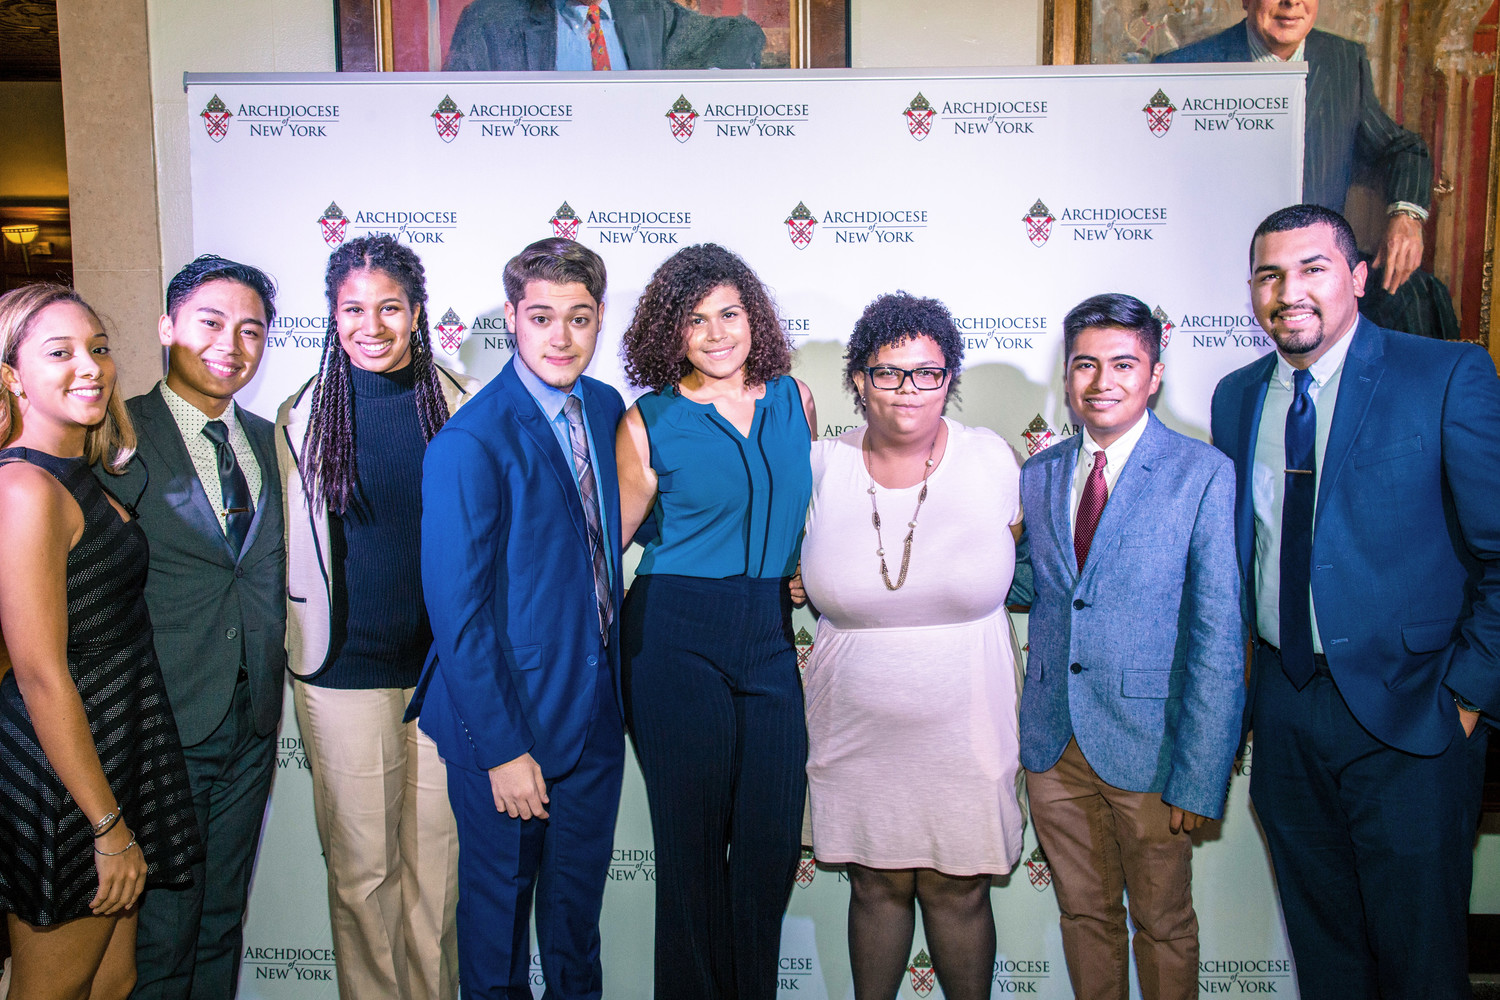 Pierre Toussaint scholars and alumni were among the 300 guests attending the Pierre Toussaint Scholarship Fund Awards Dinner at the New York Athletic Club in Manhattan Oct. 10.